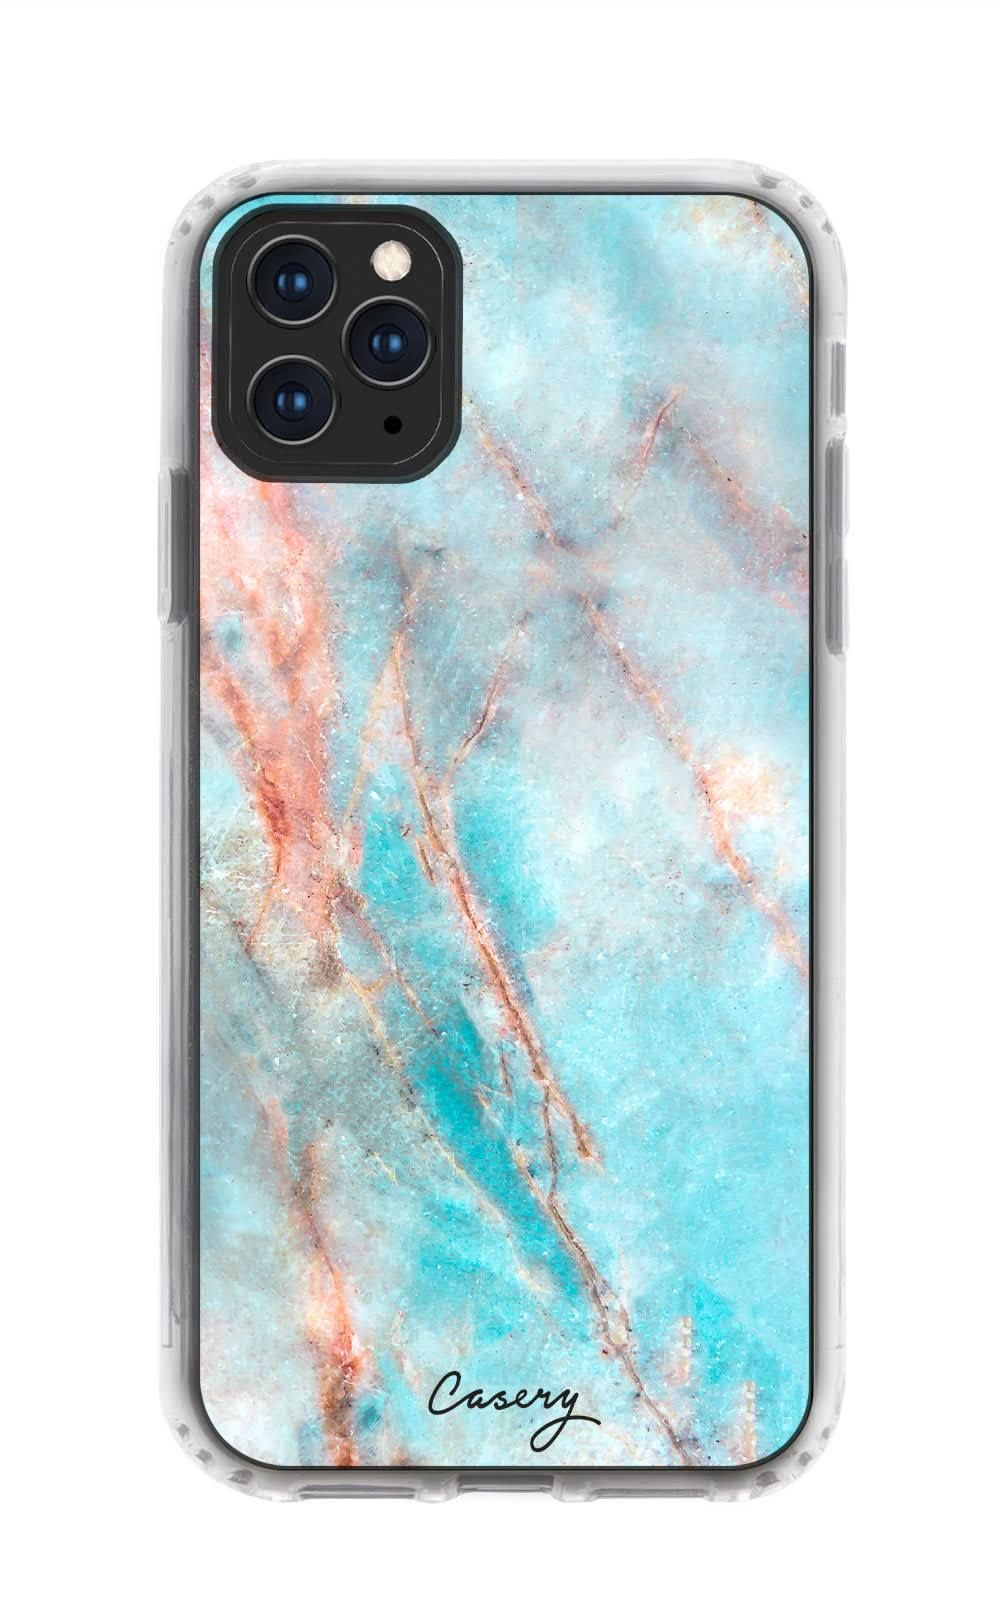 Blush and Payne's Grey Flowing Abstract Painting iphone 11 case